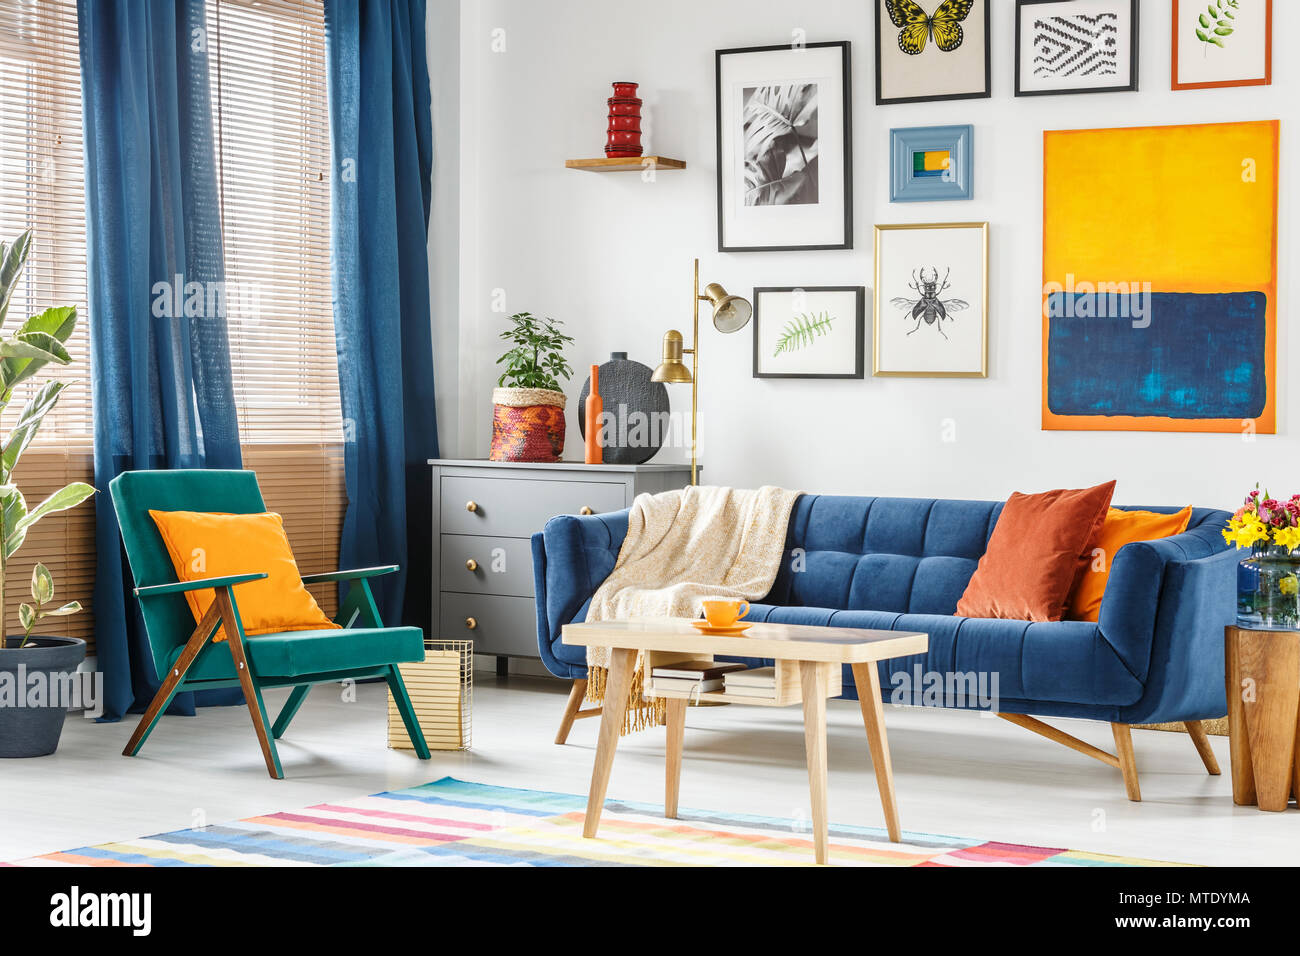 Real photo of a colorful living room interior with a green armchair ...